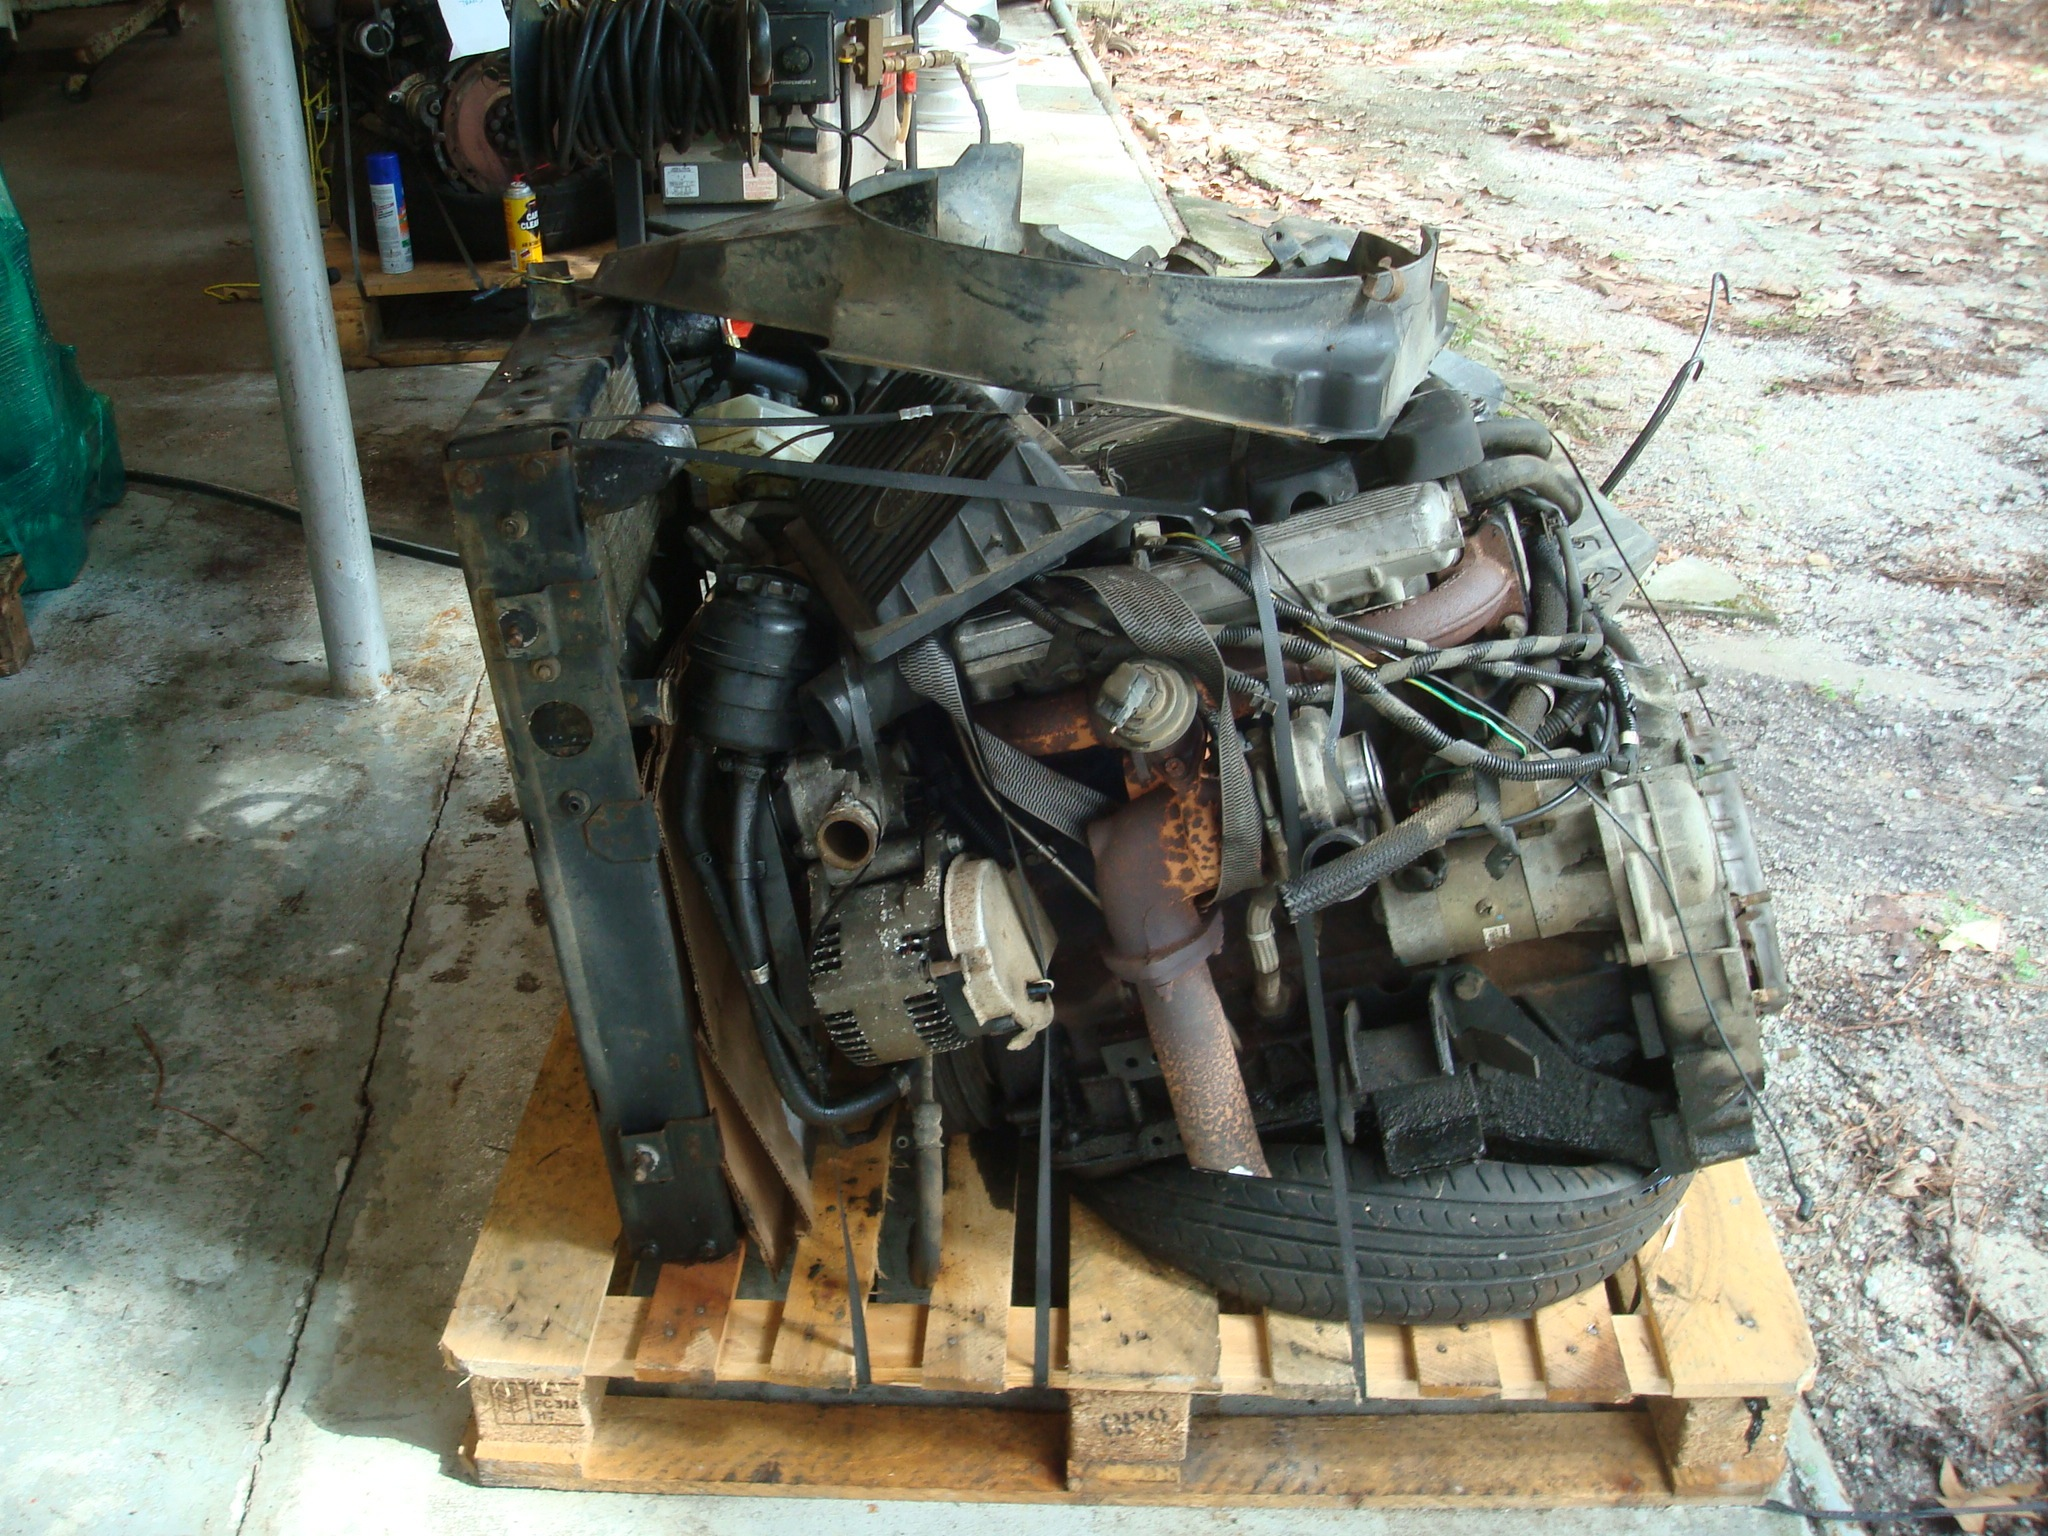 engines rebuilt completely ny defender sale rover states in land united remanufactured cars landrover for southampton